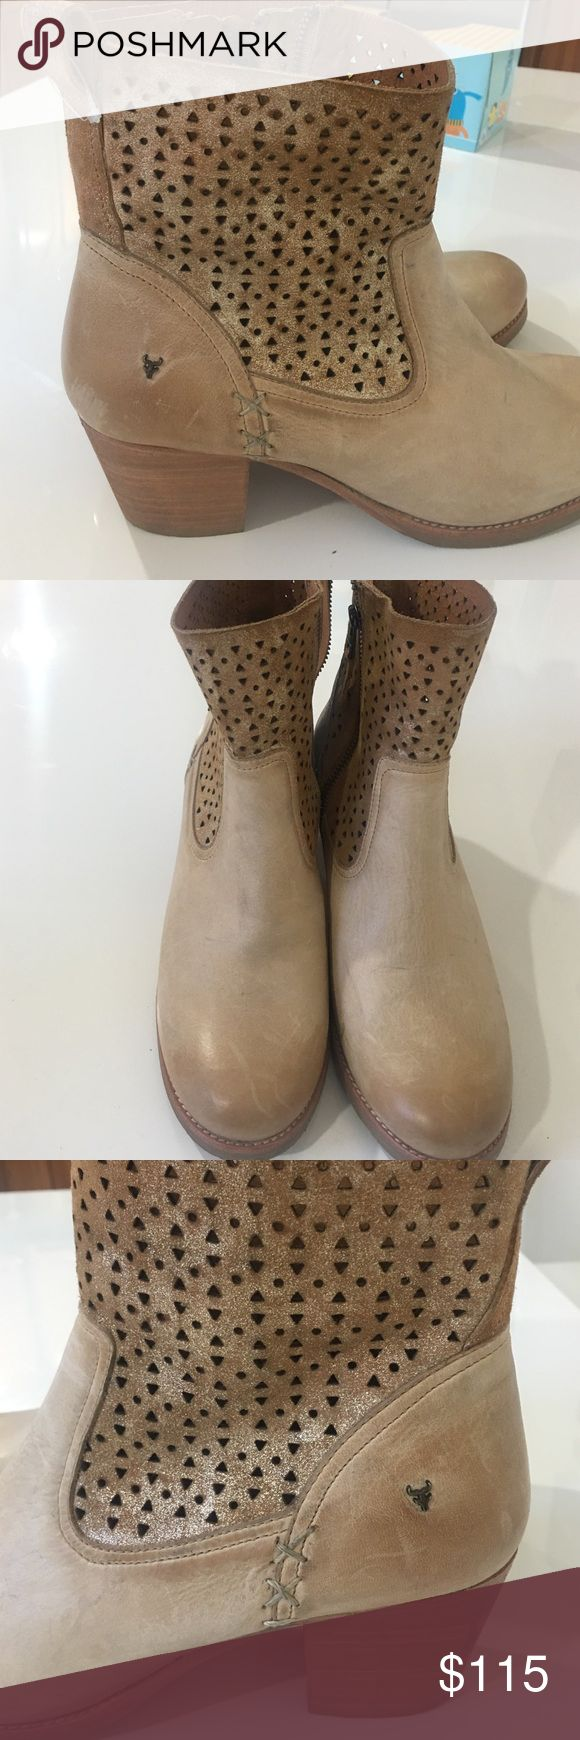 Trask women boots Real leather perfect condition worn twice Trask Shoes Ankle Boots & Booties